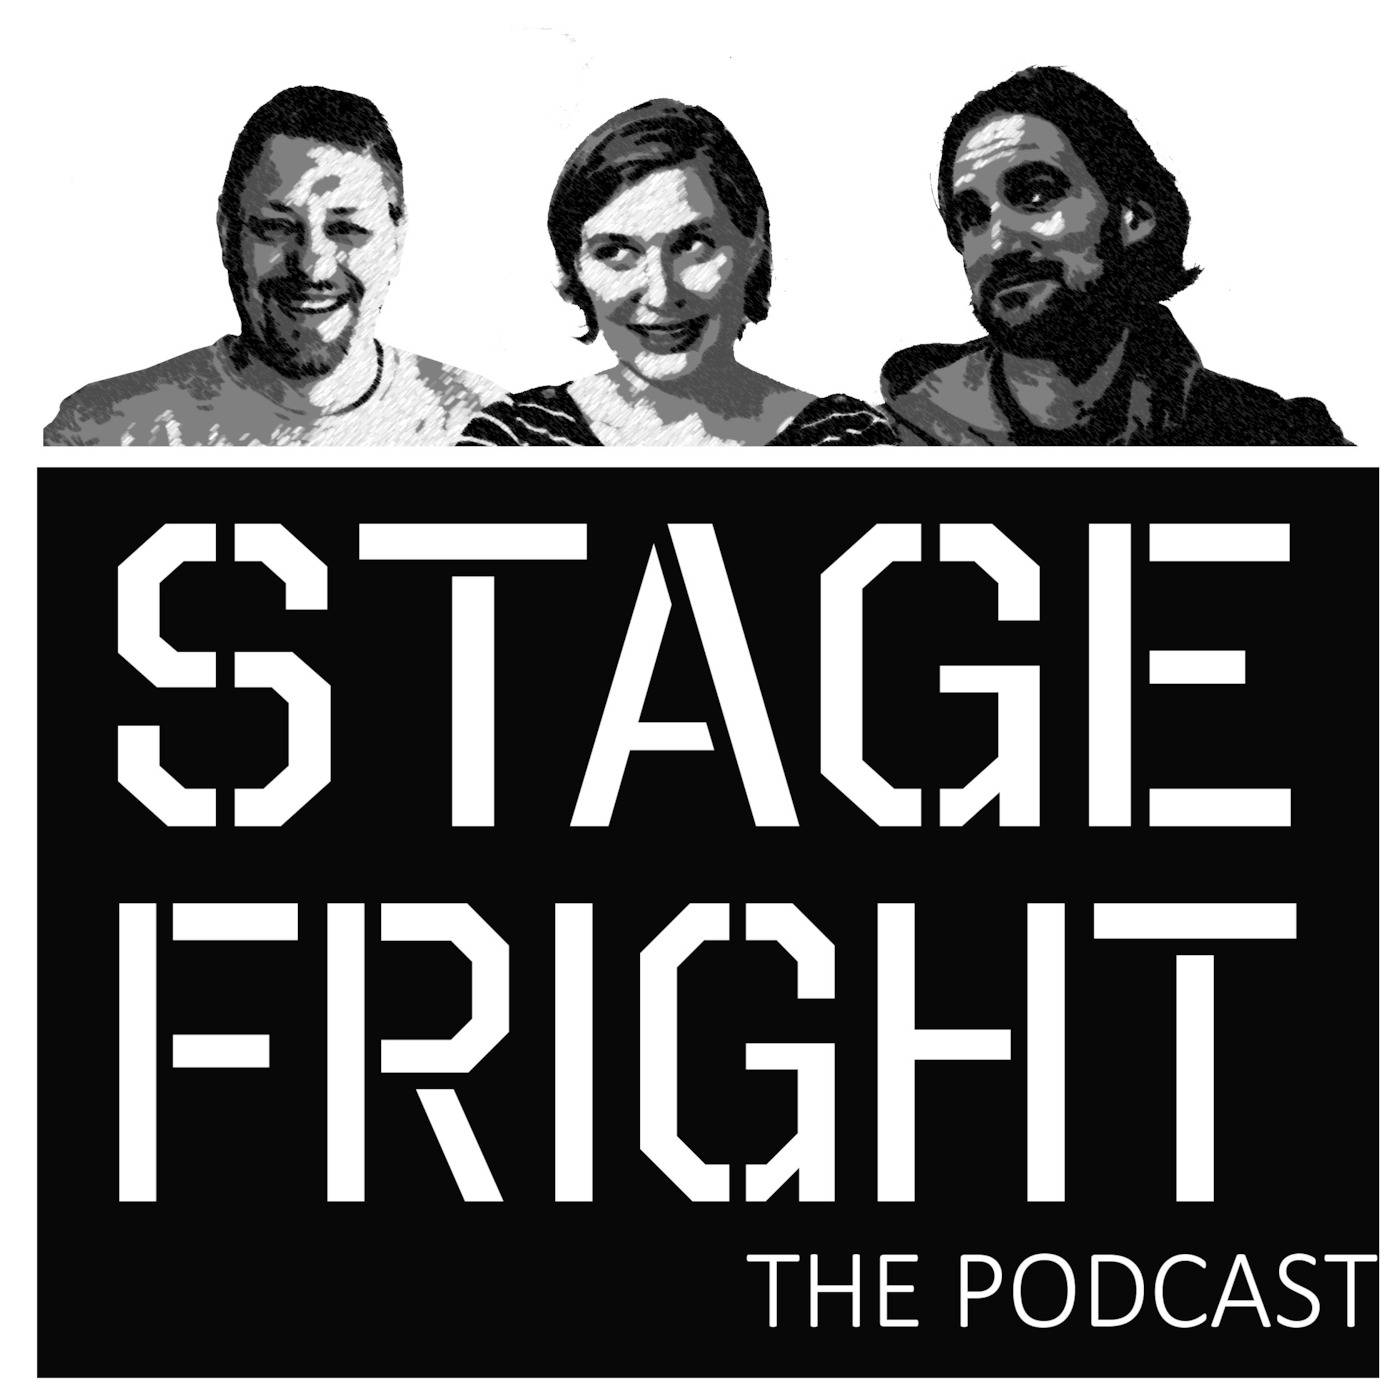 The Stagefright Podcast